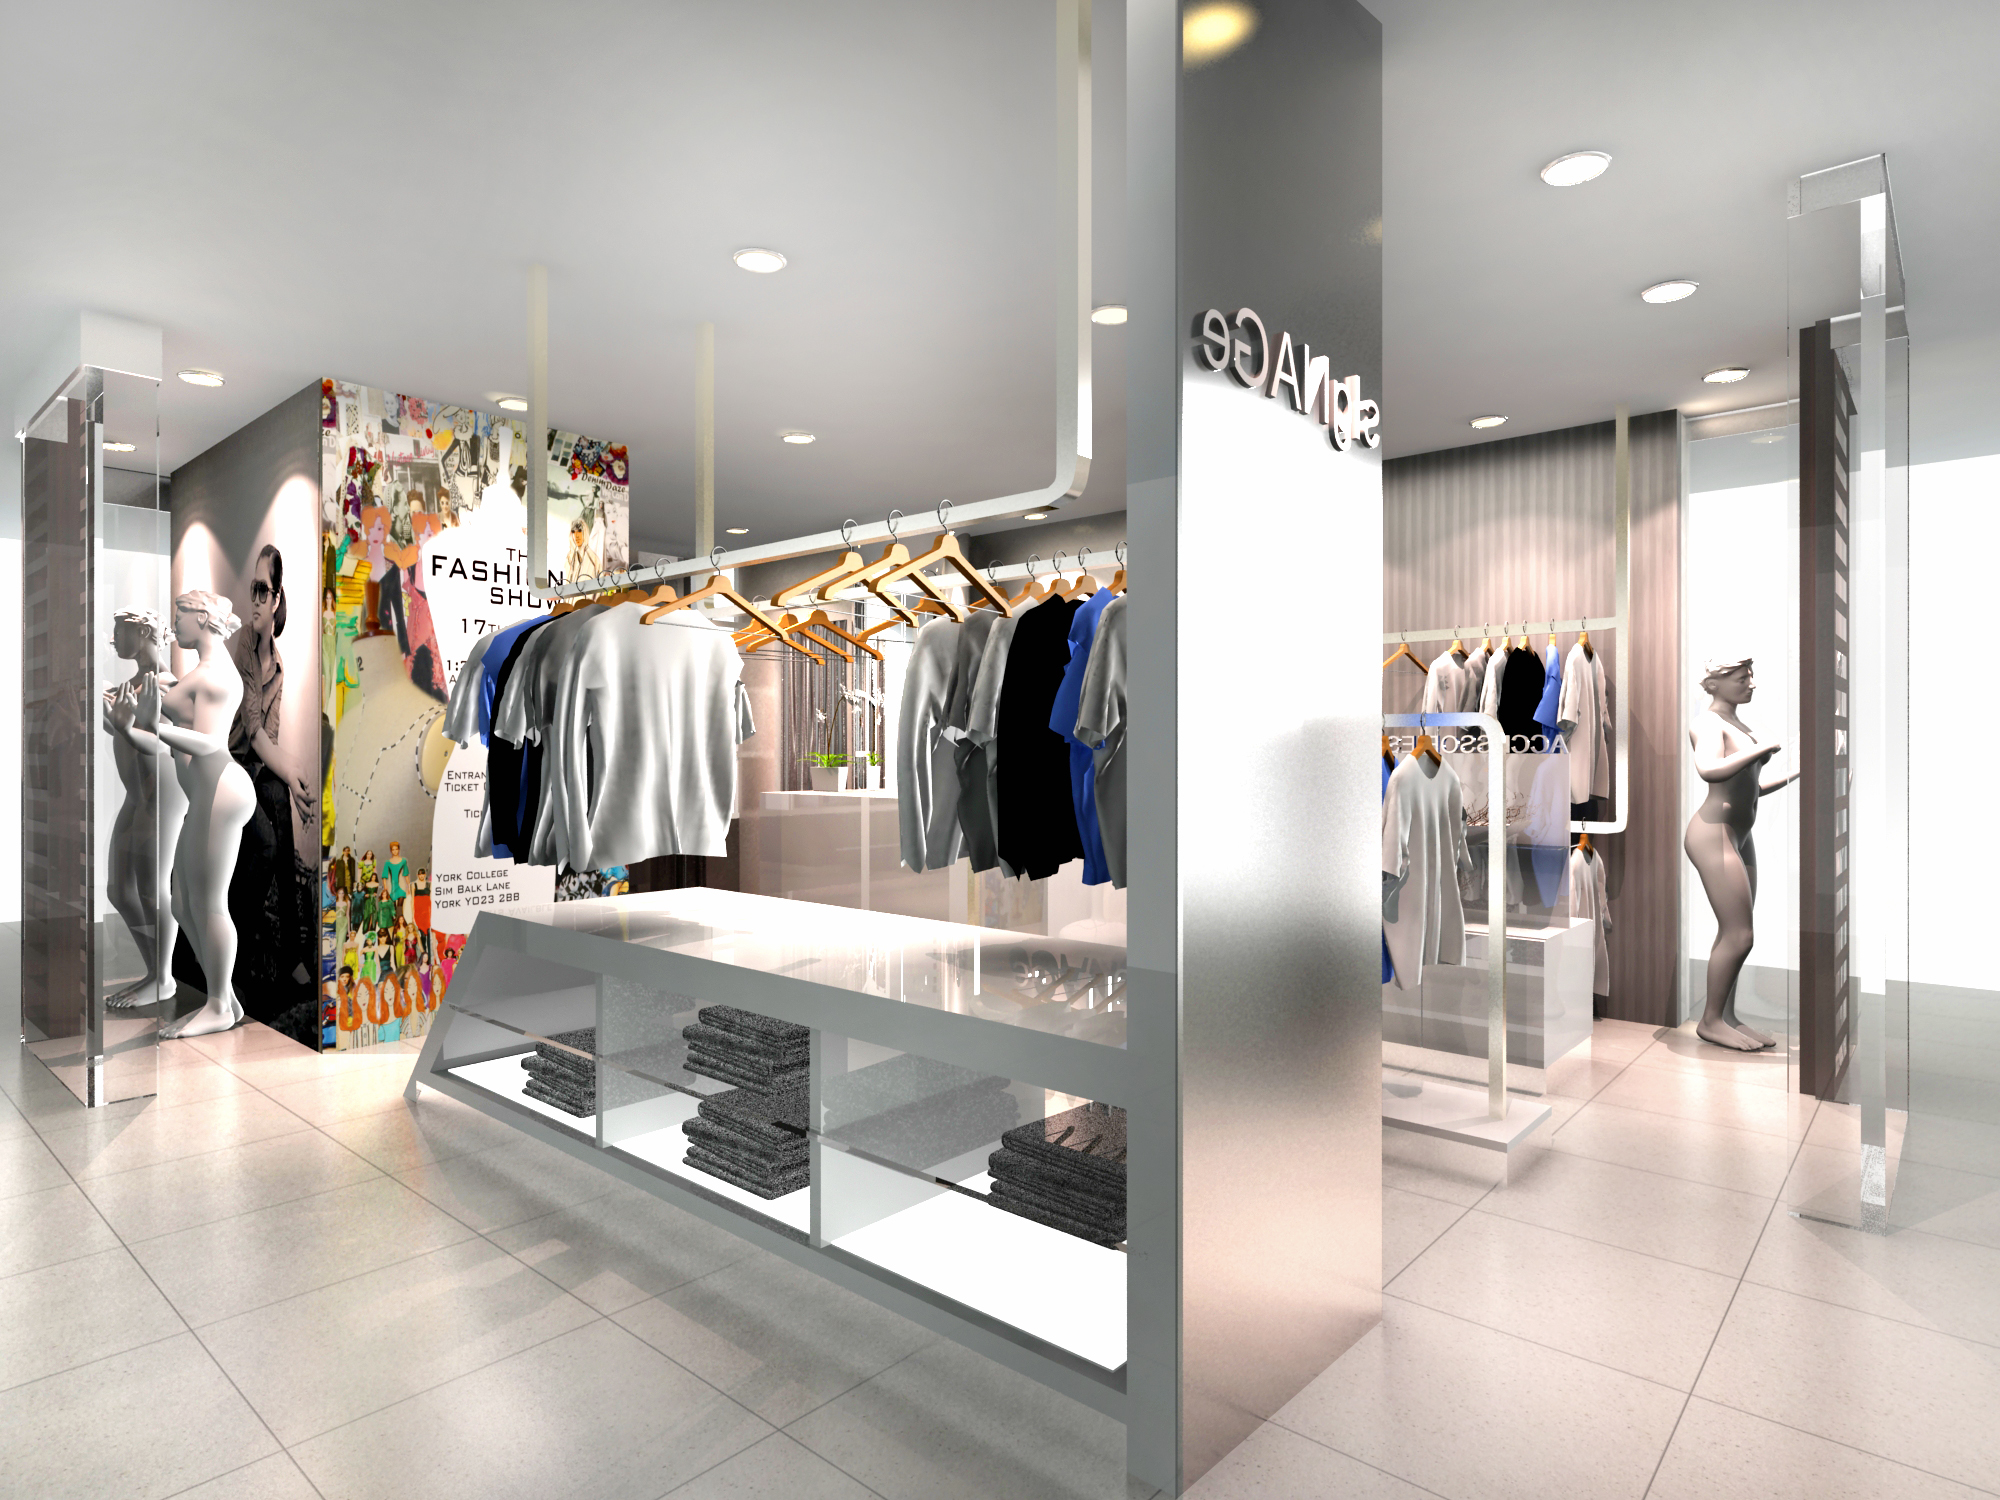 Design A Blueprint Retail Shop Design Retail Store Design